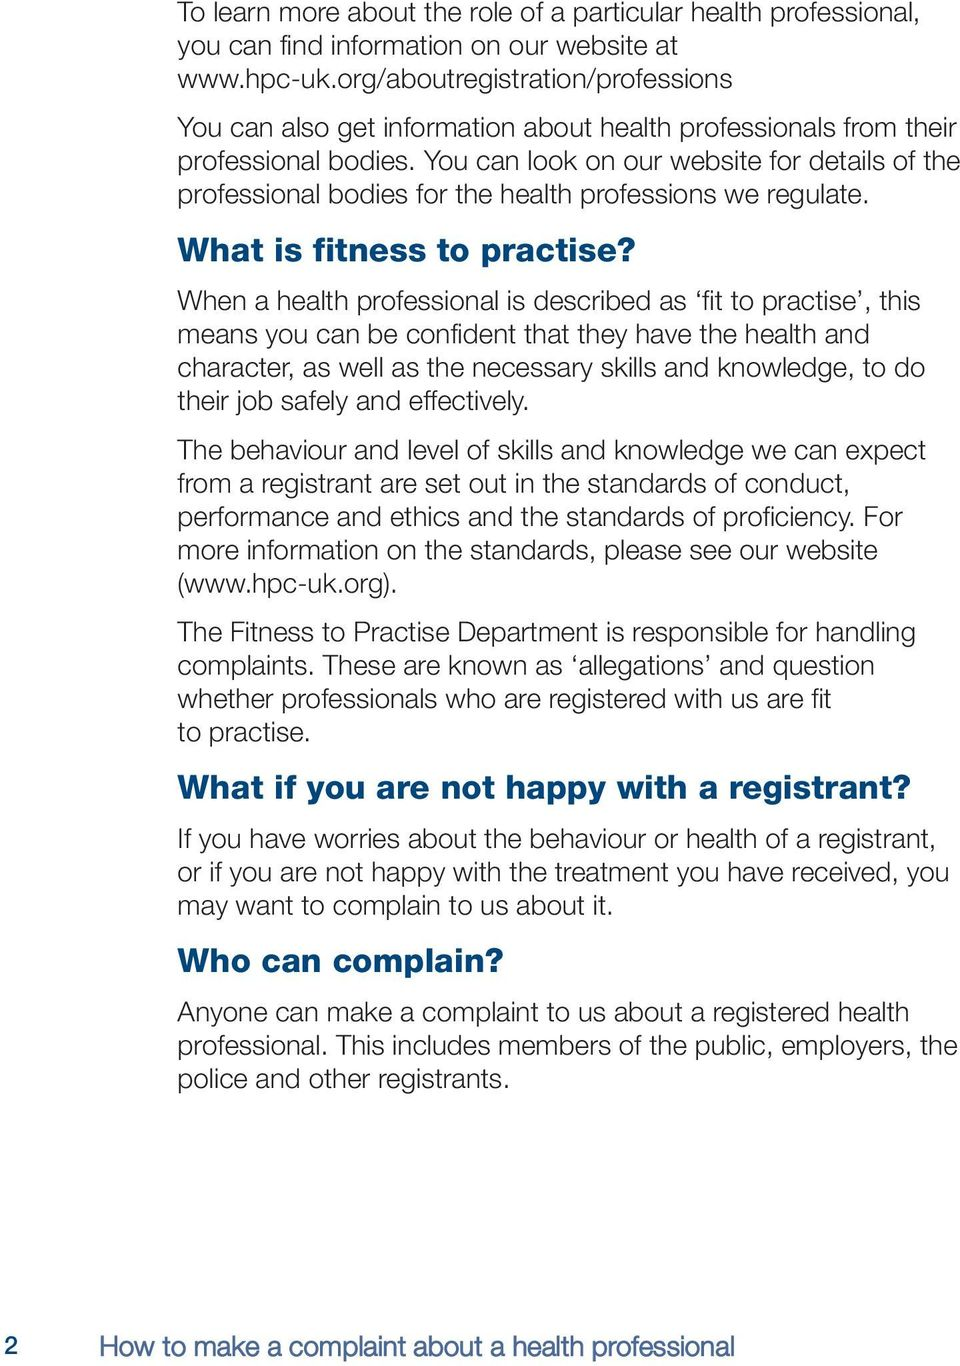 You can look on our website for details of the professional bodies for the health professions we regulate. What is fitness to practise?